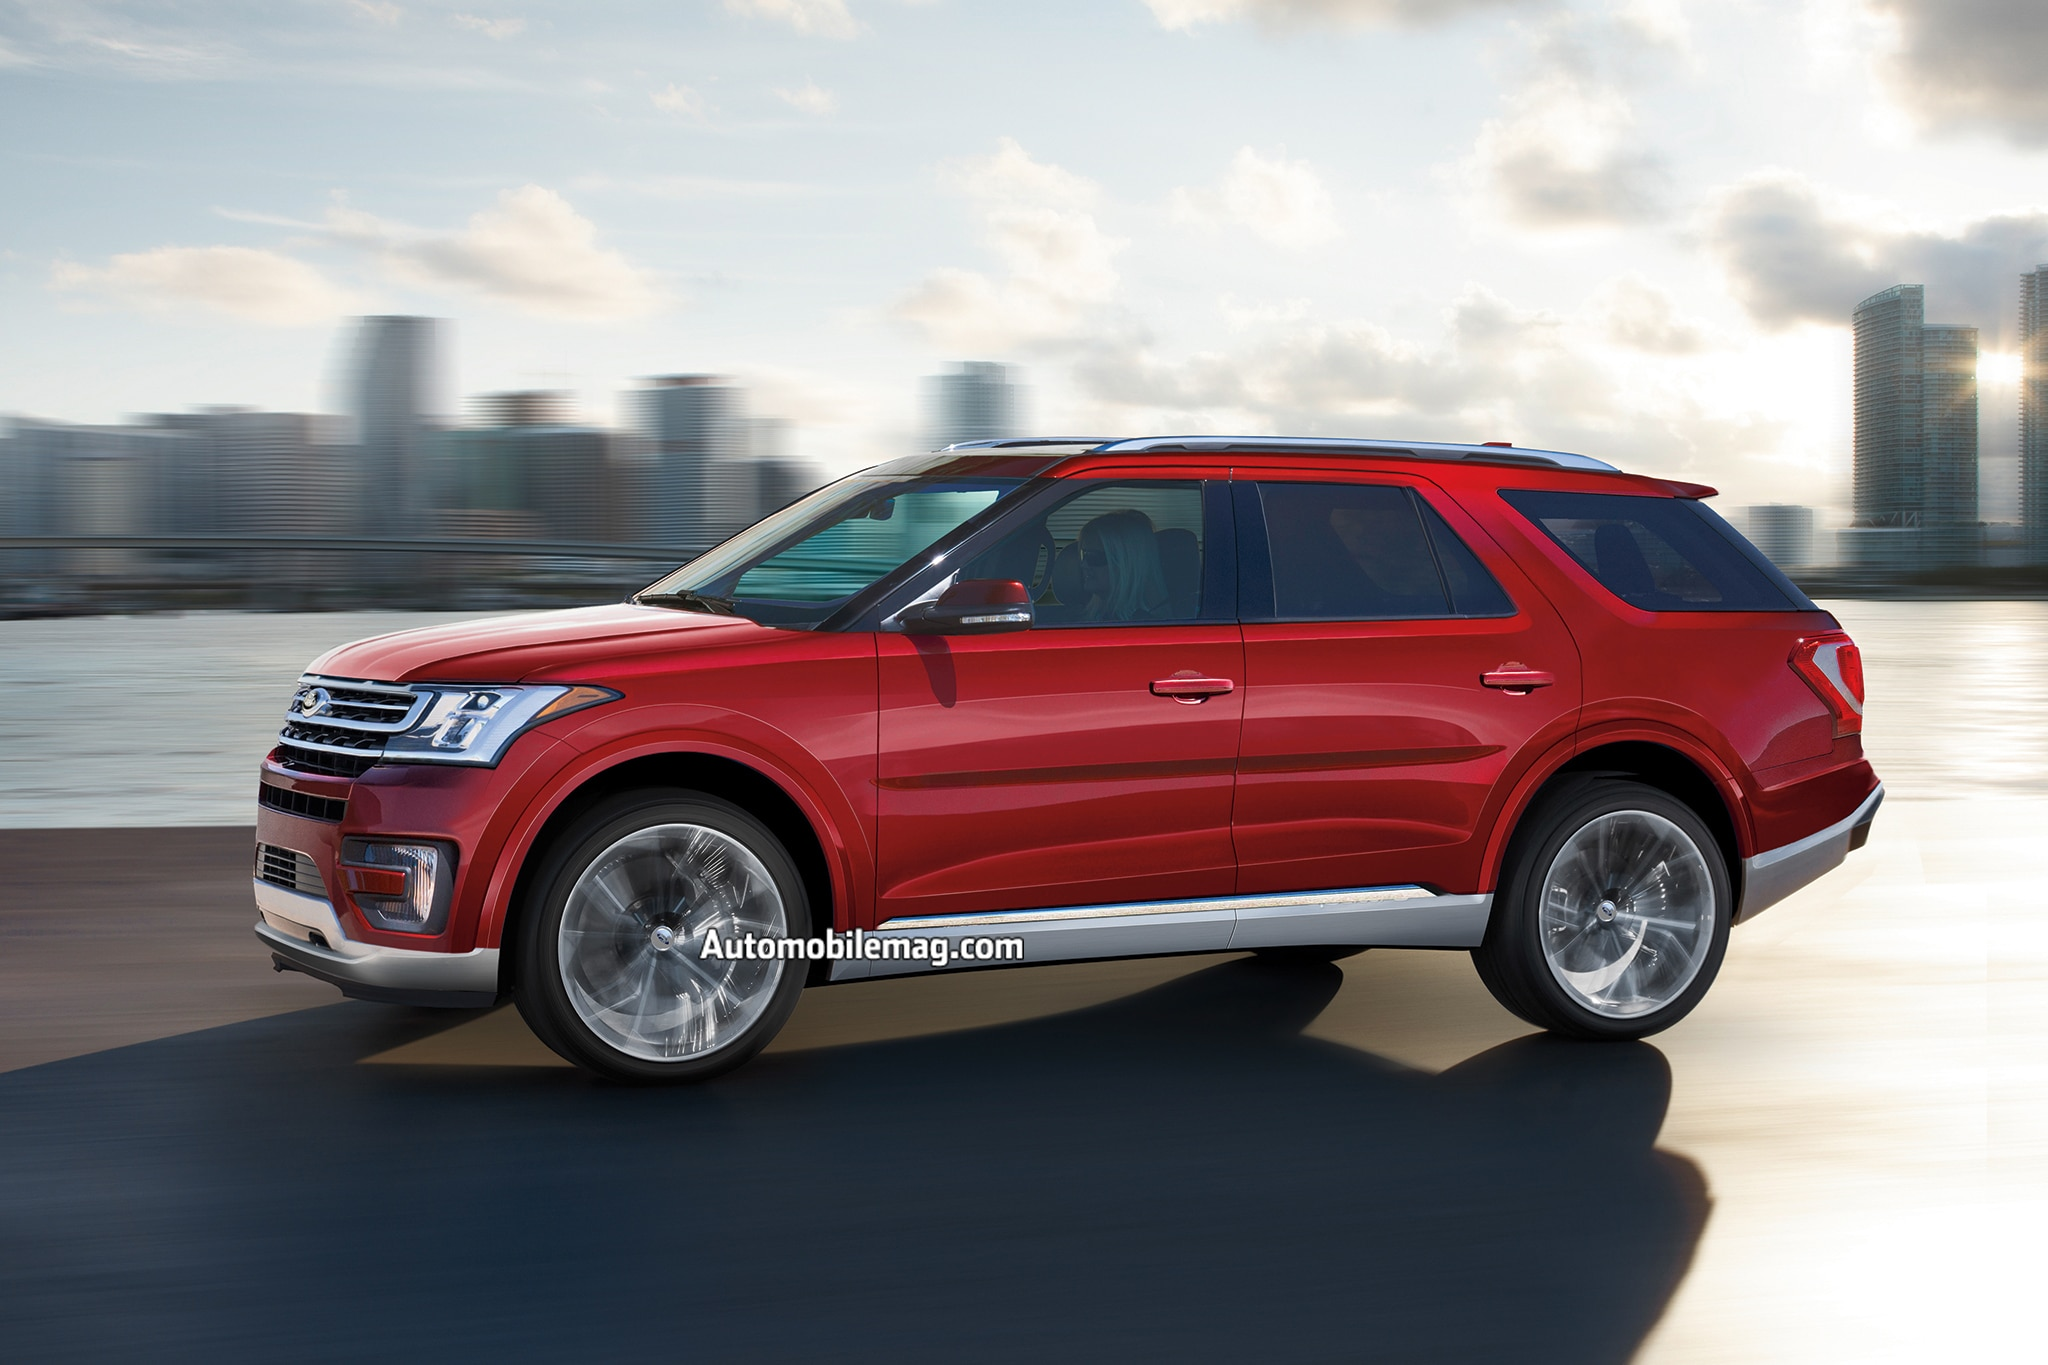 2018 Ford Expedition Review >> 2019 Ford Explorer Related Keywords - 2019 Ford Explorer Long Tail Keywords KeywordsKing